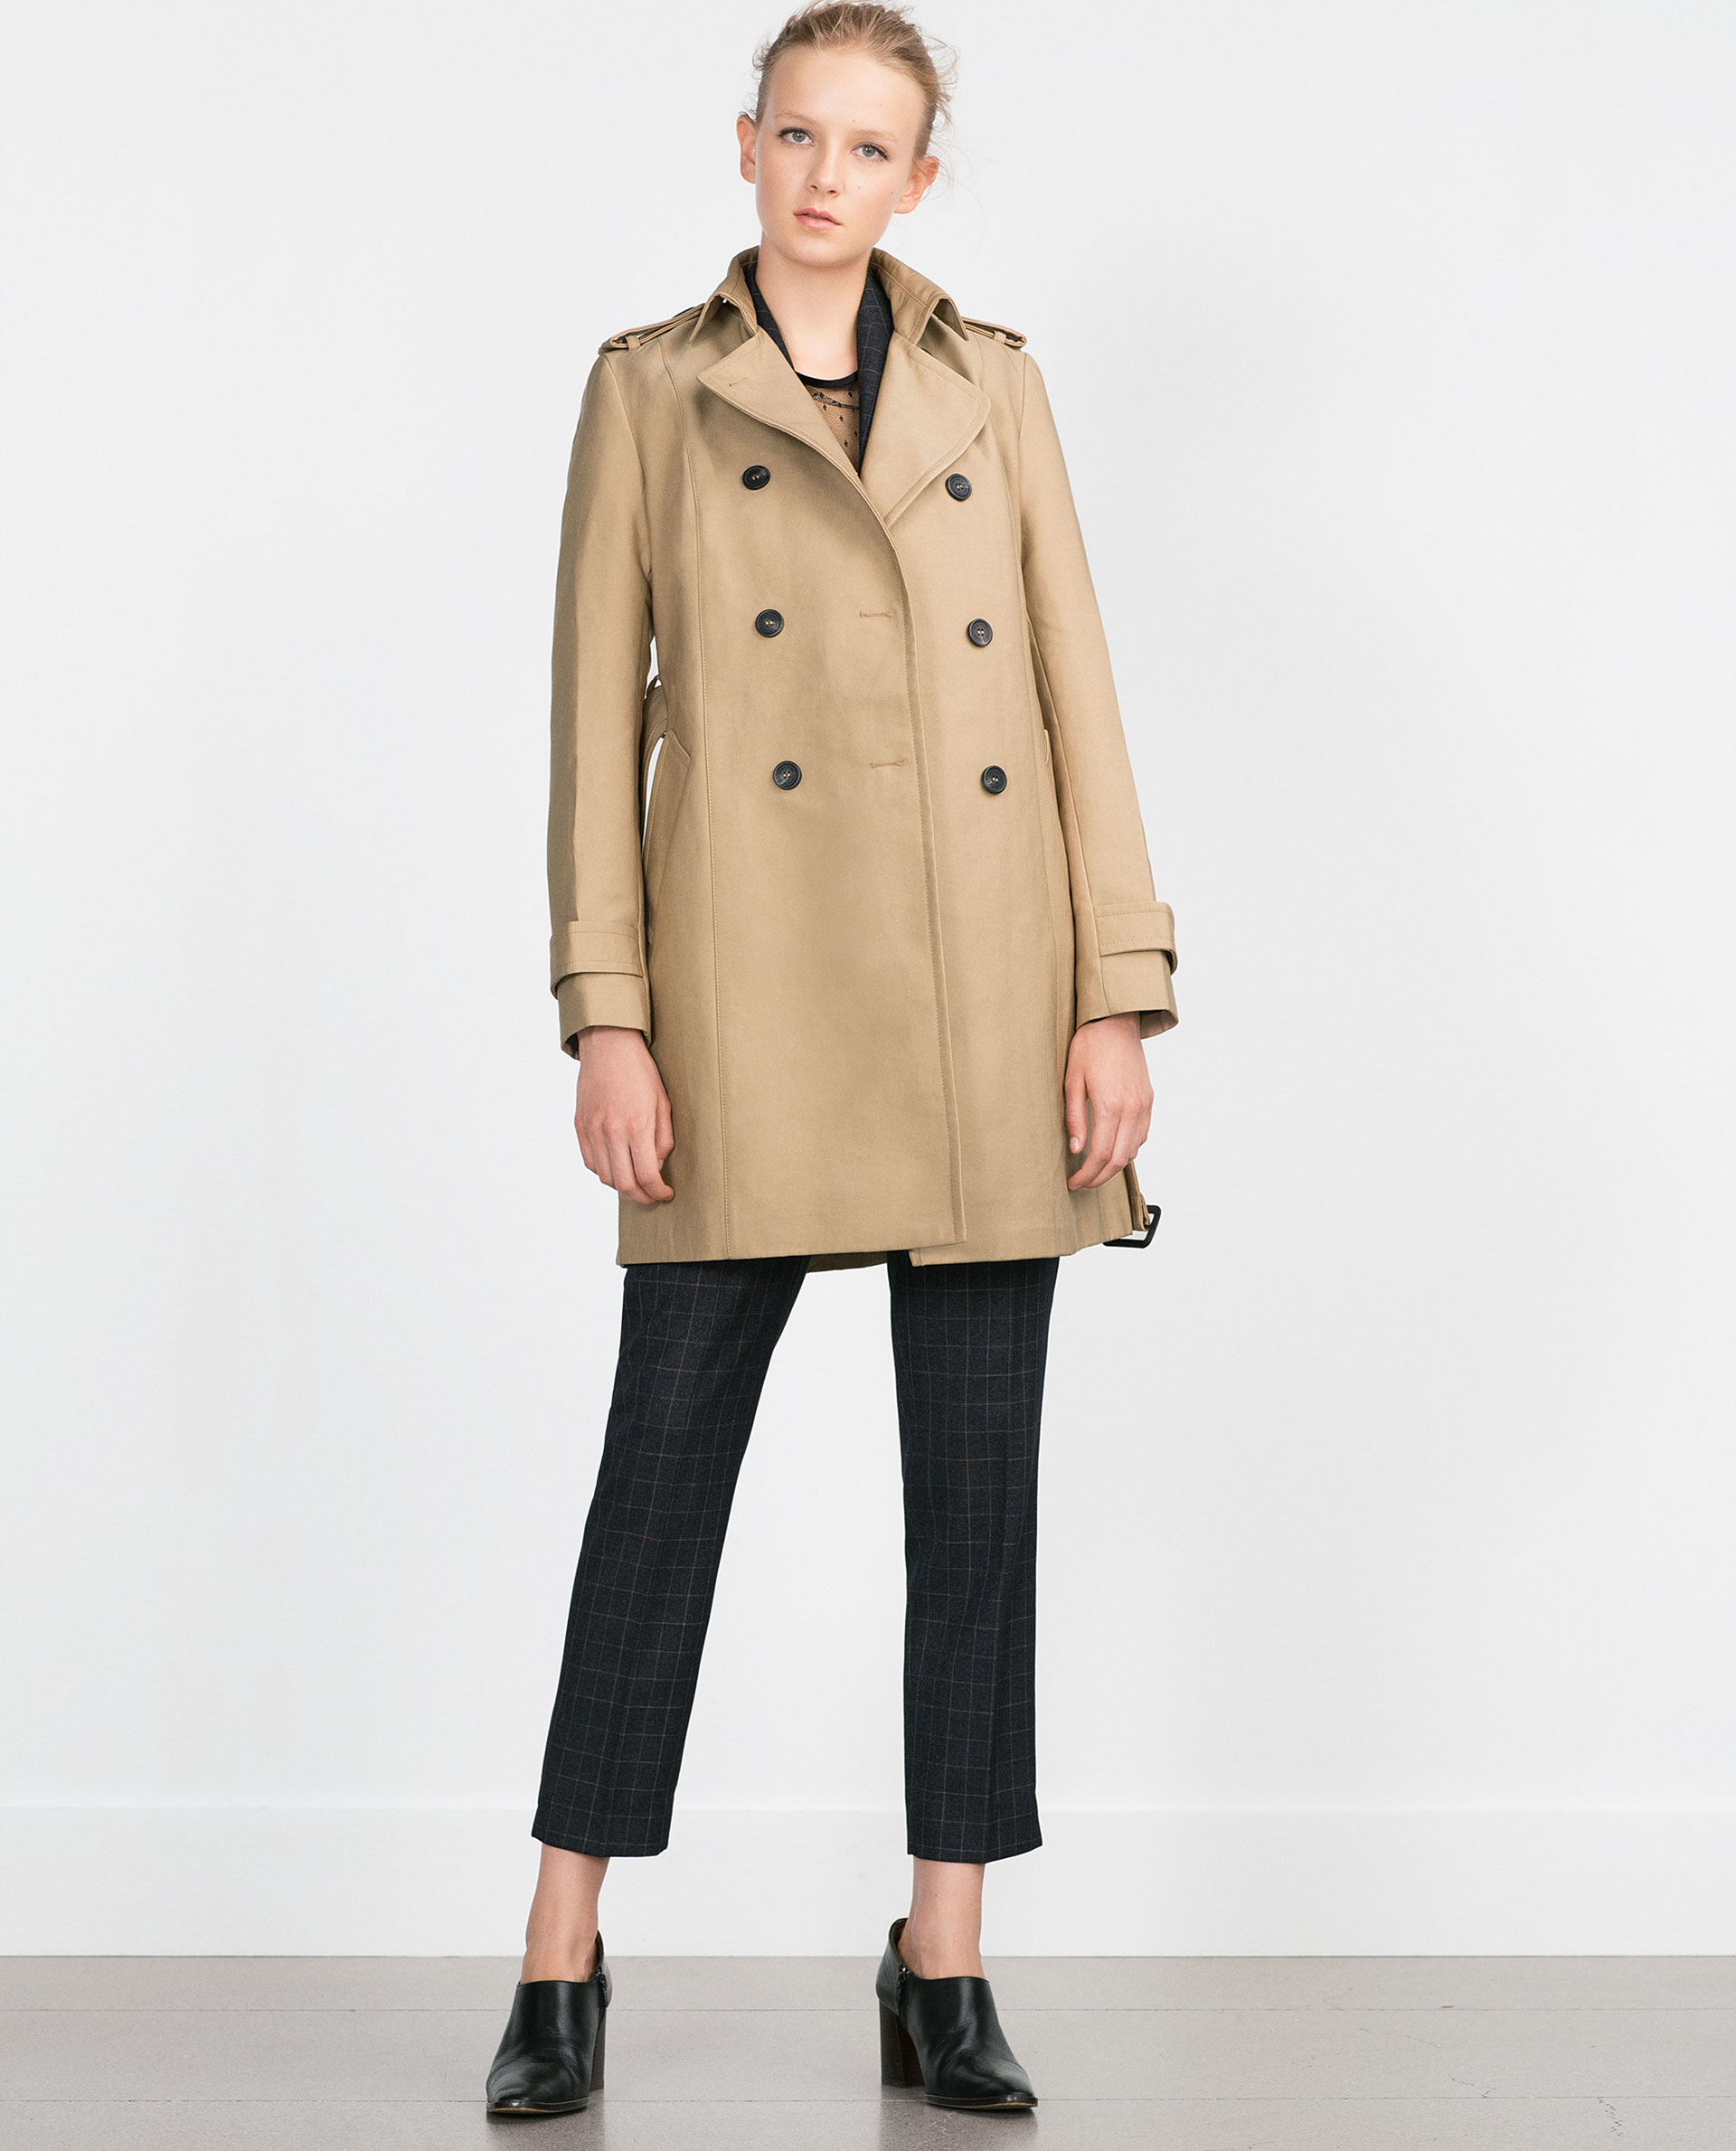 This season's outerwear for women to stay in style at ZARA online. Receive your order with FREE SHIPPING.